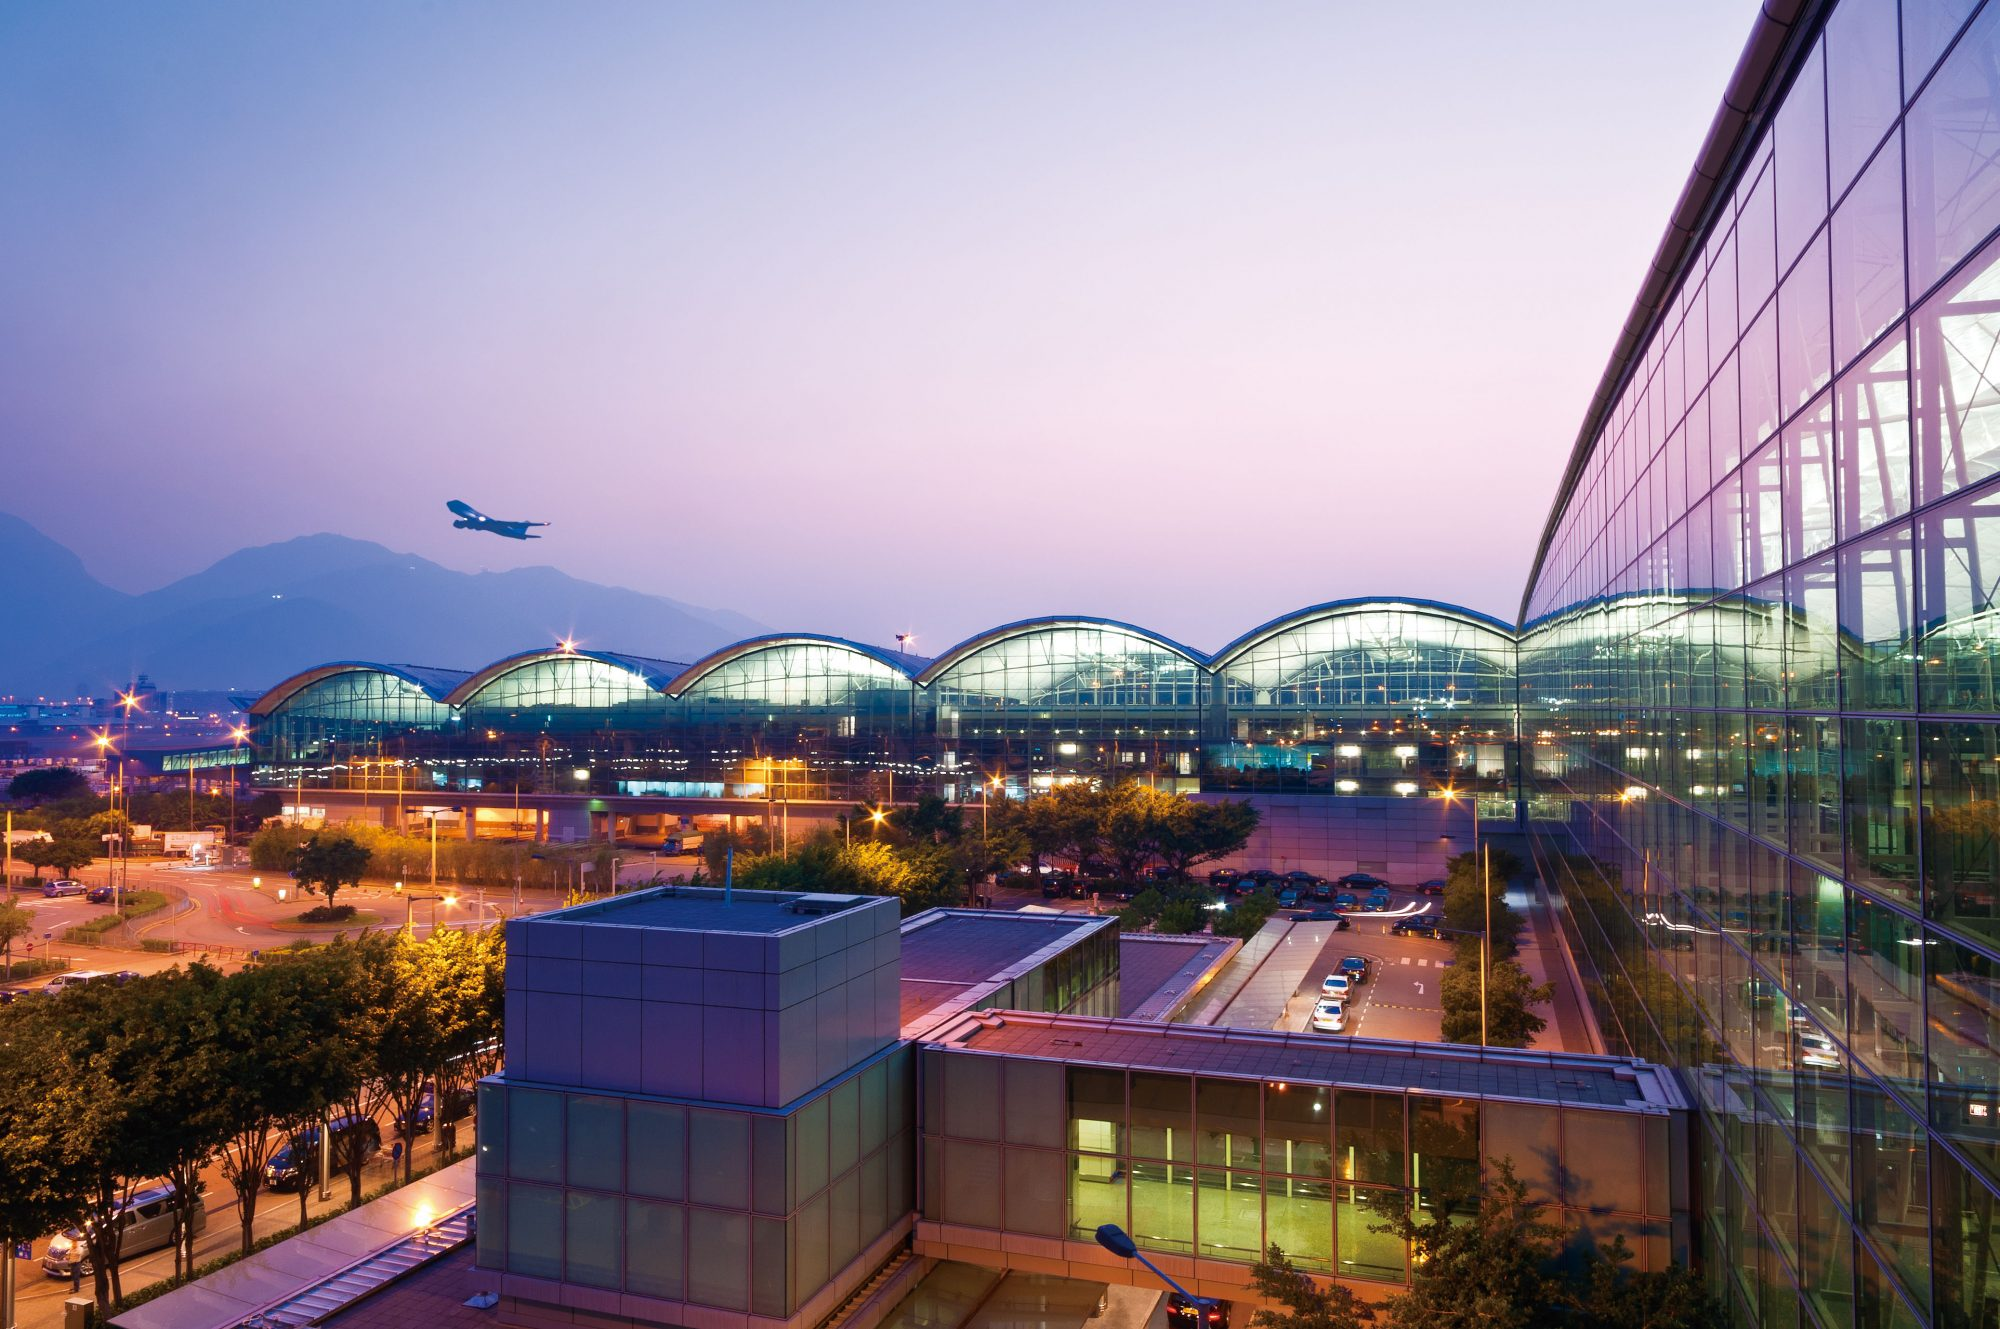 Hong Kong International Airport, China